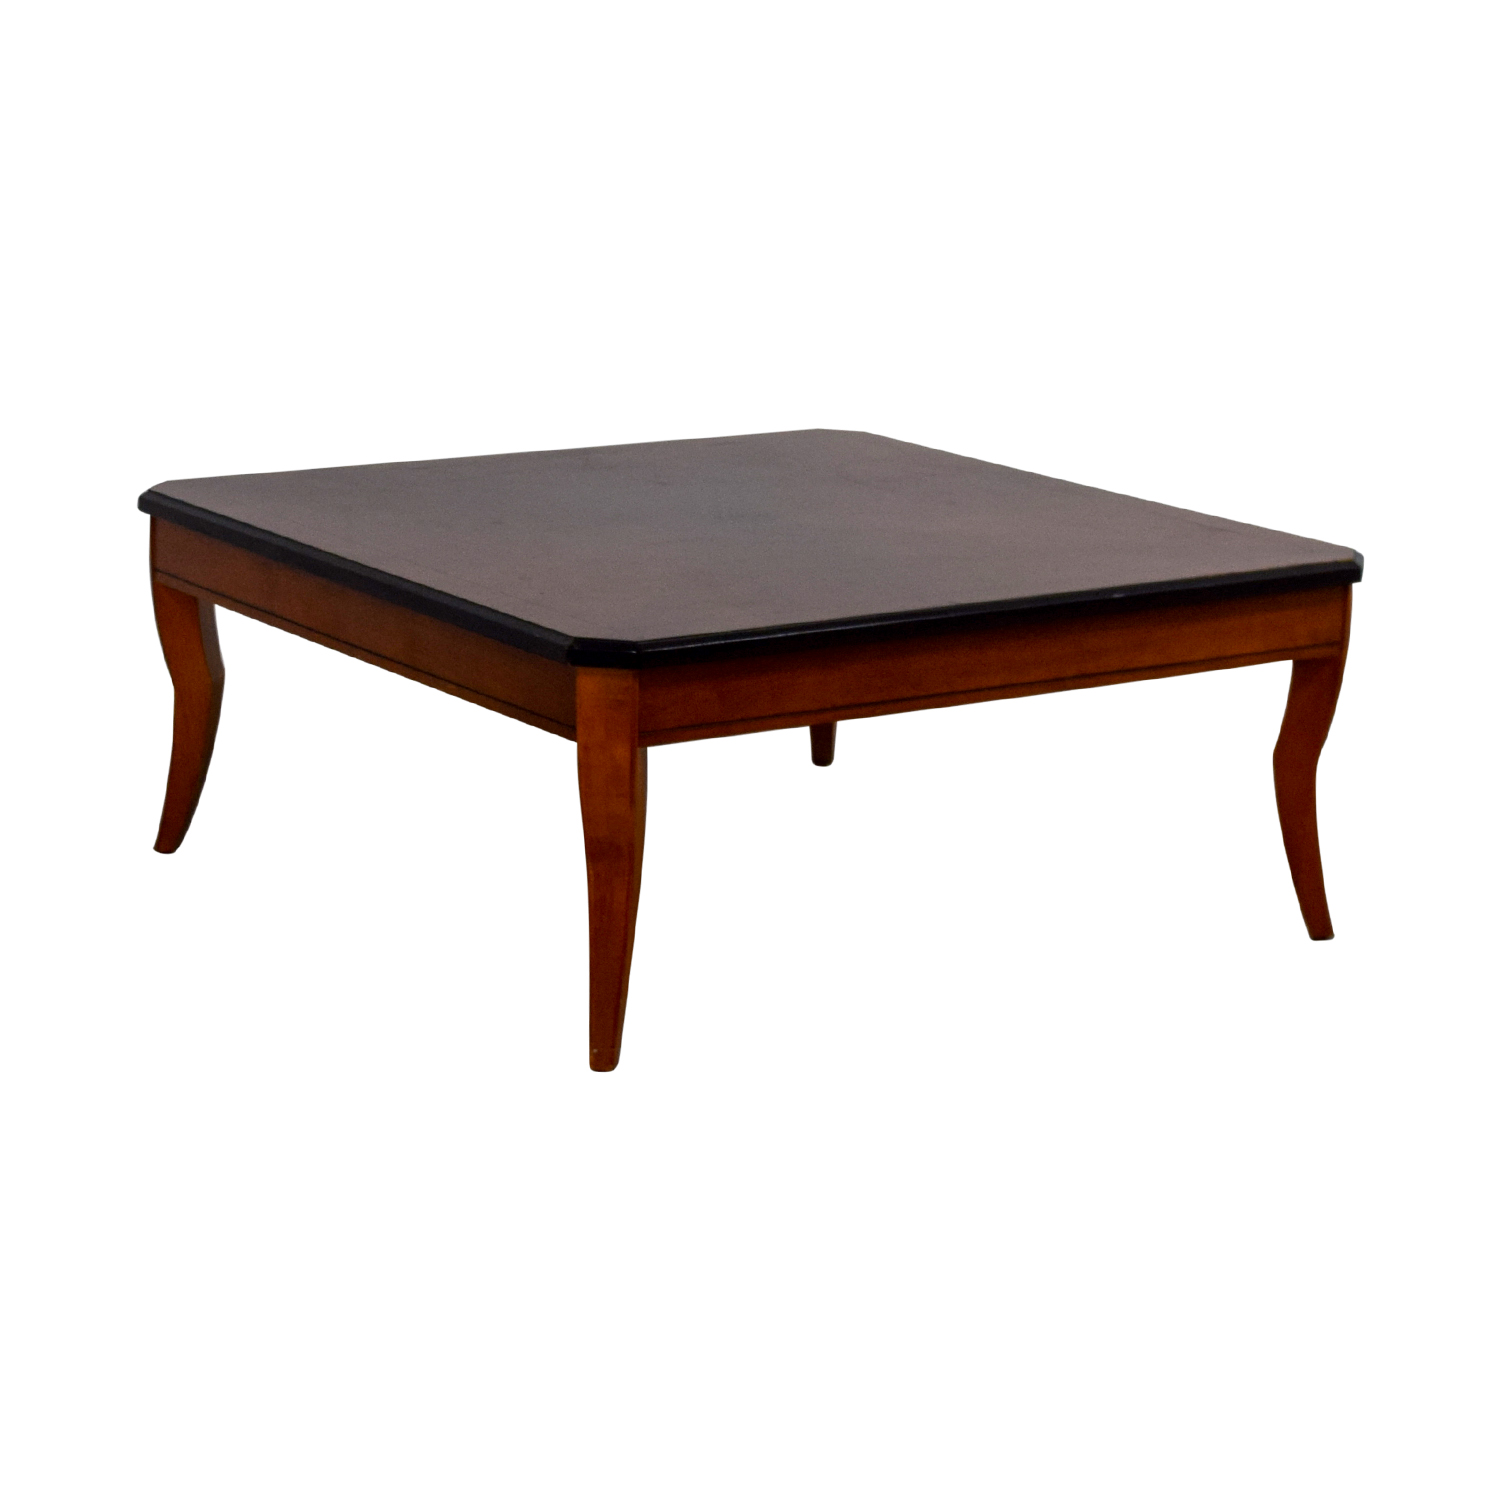 56 off cherry wood square coffee table tables Cherry wood coffee tables